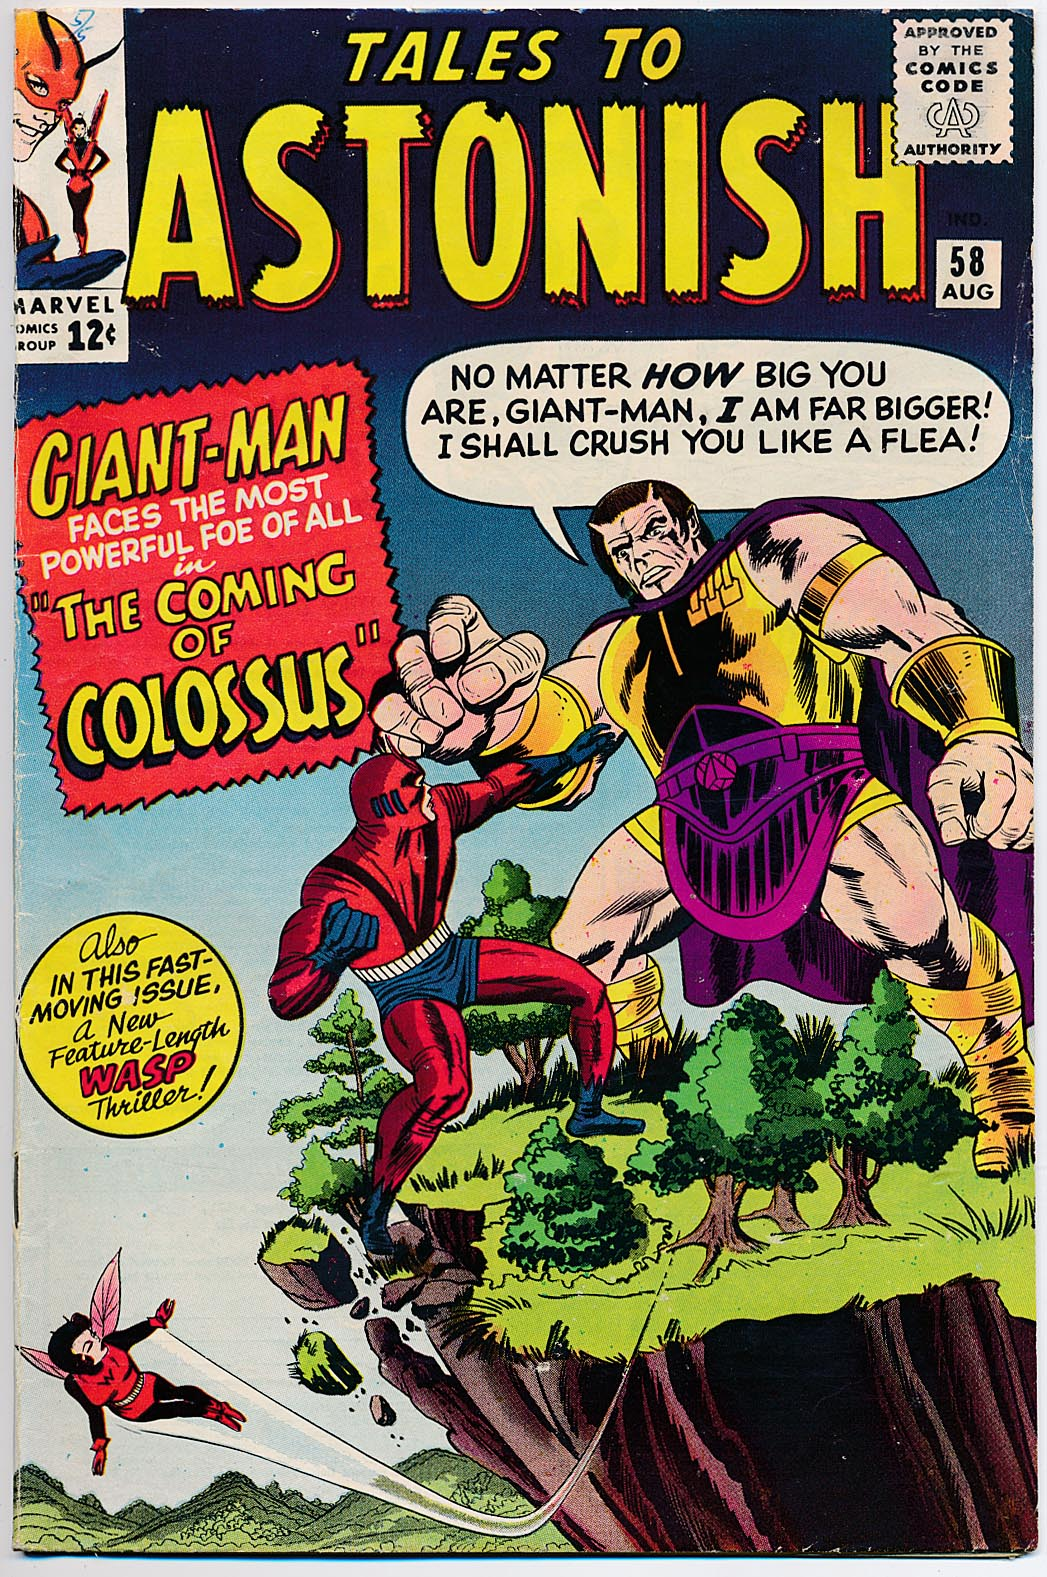 Tales To Astonish 58 -VG